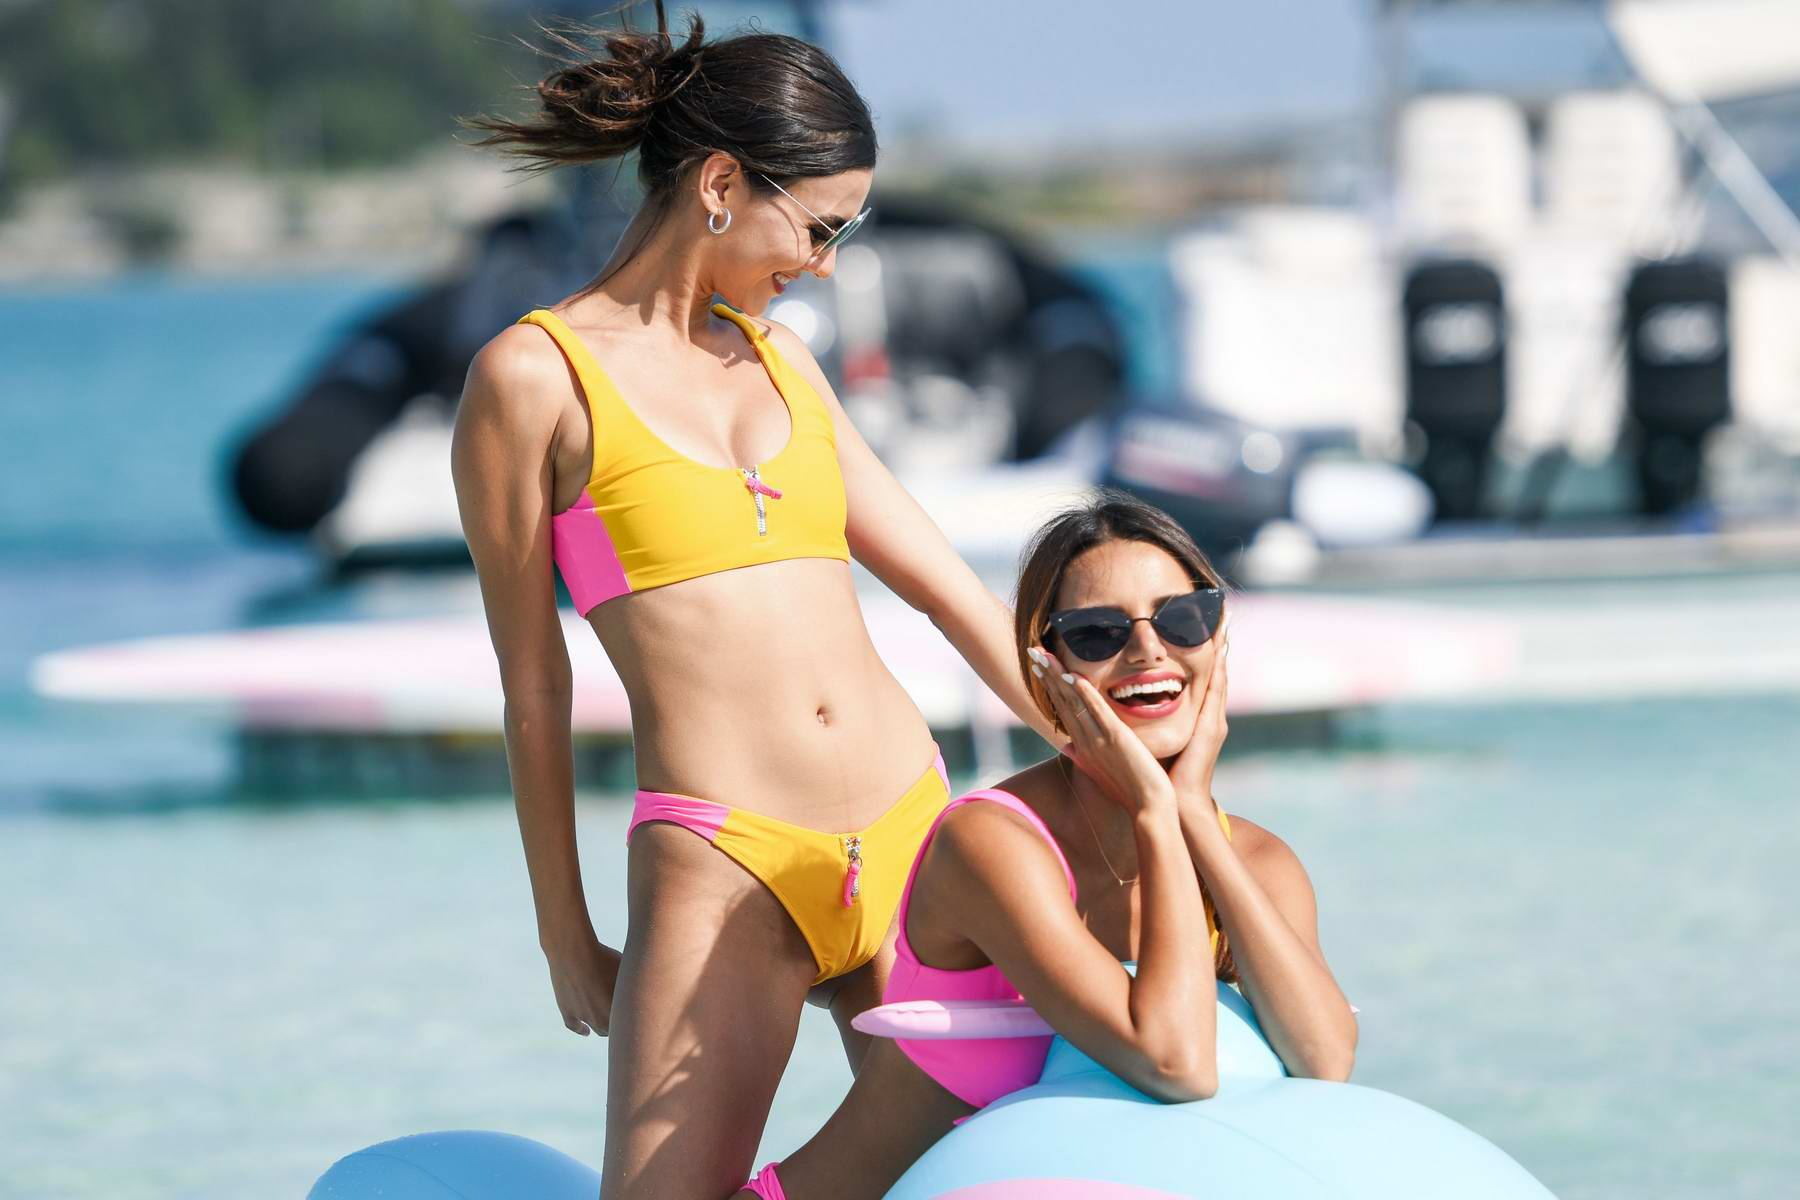 victoria justice and madison reed spotted in bikini during ...